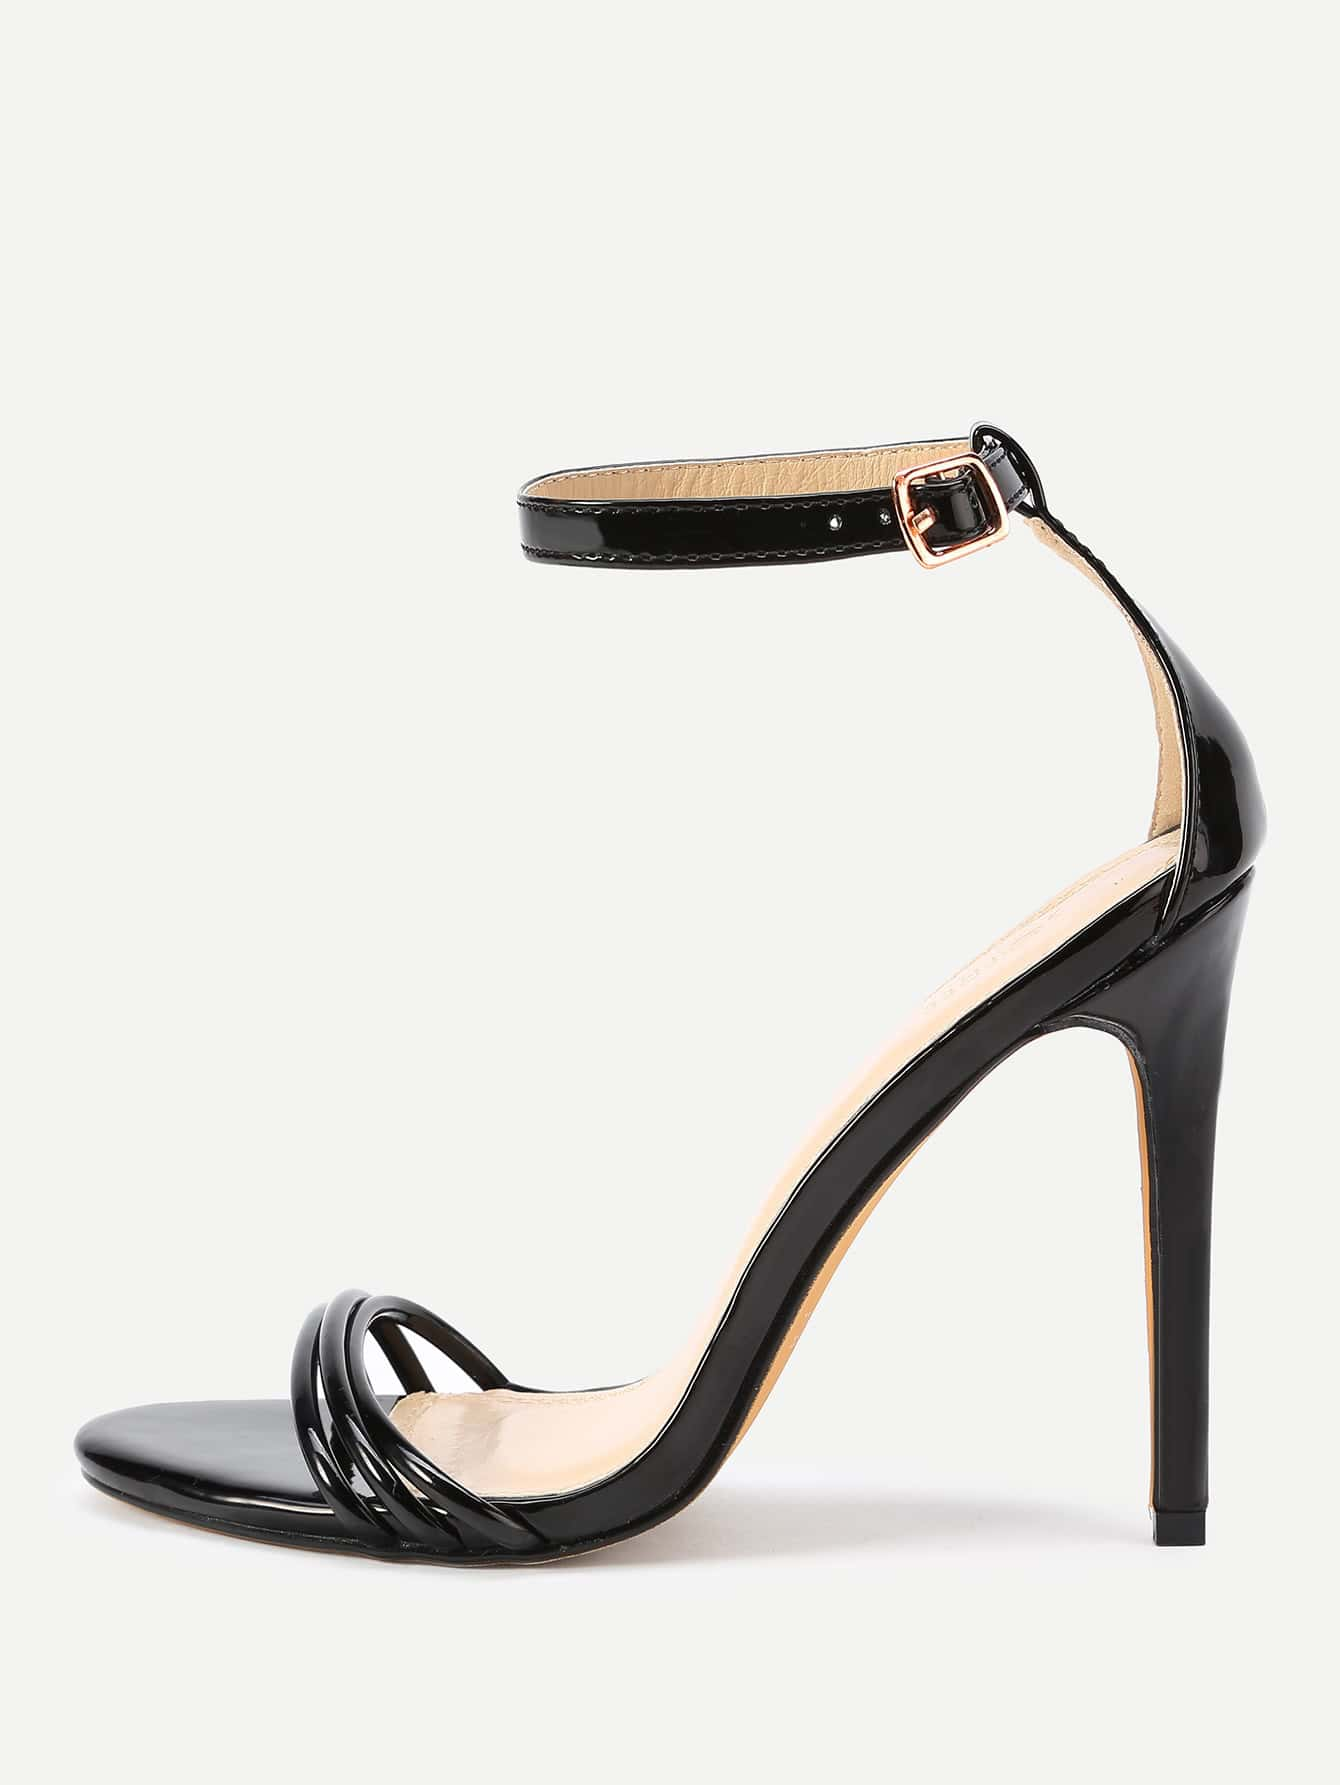 Two Part Stiletto High Heel Sandals shoes17052305